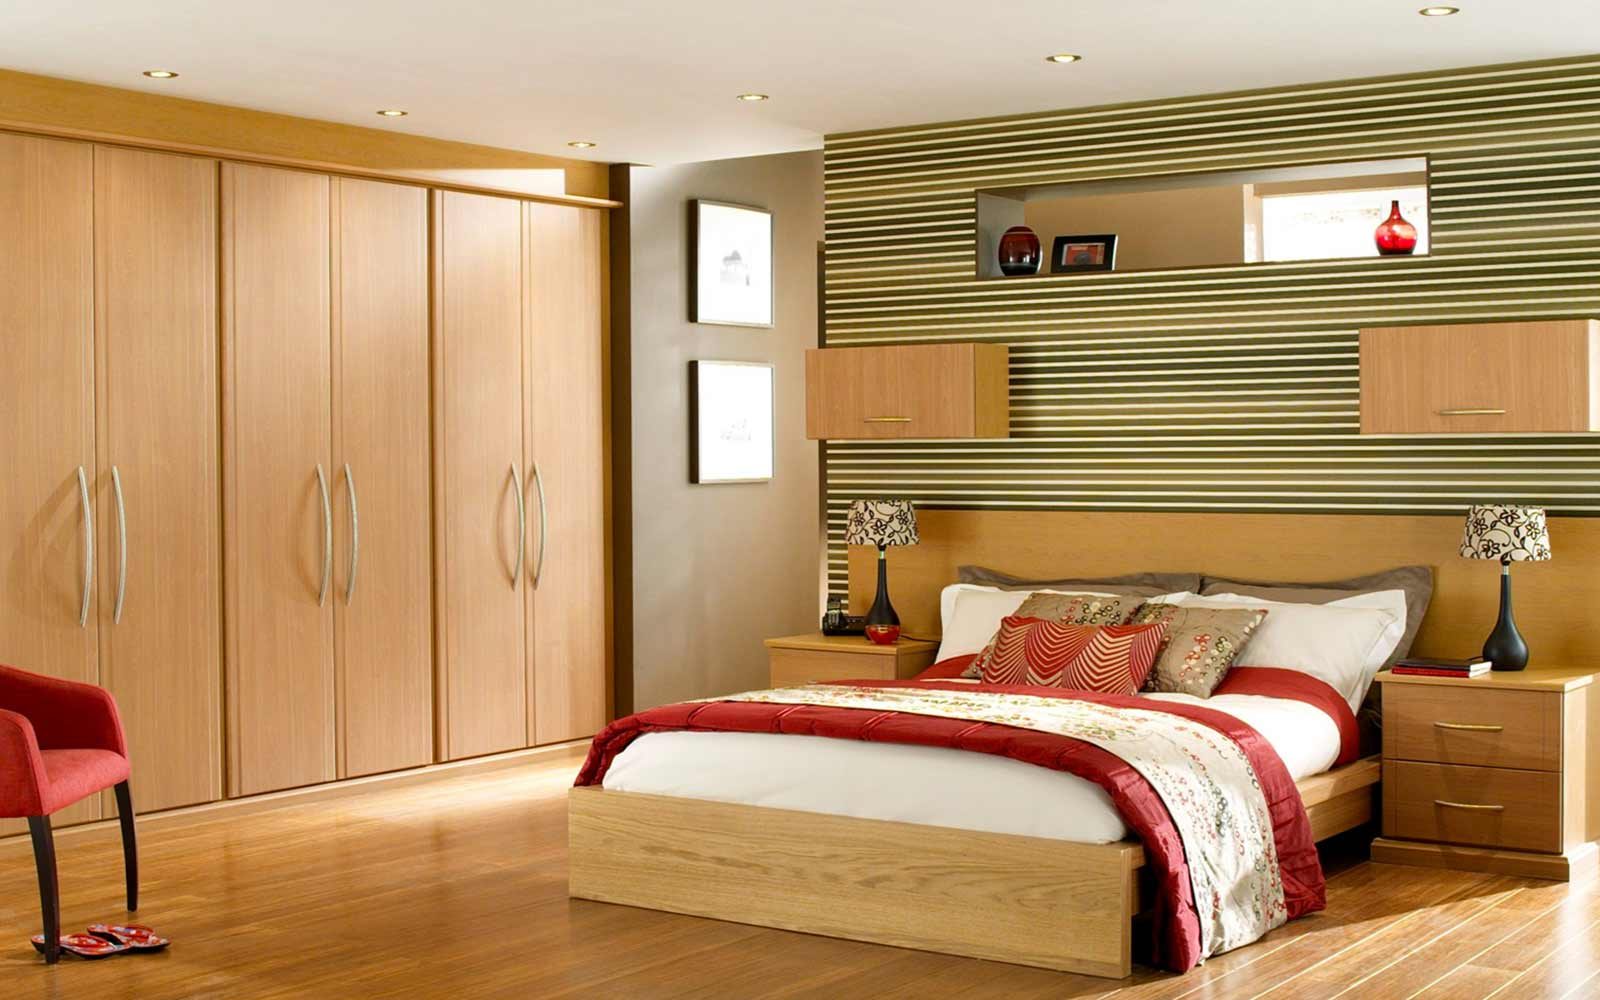 35 images of wardrobe designs for bedrooms for Room design ideas for bedrooms